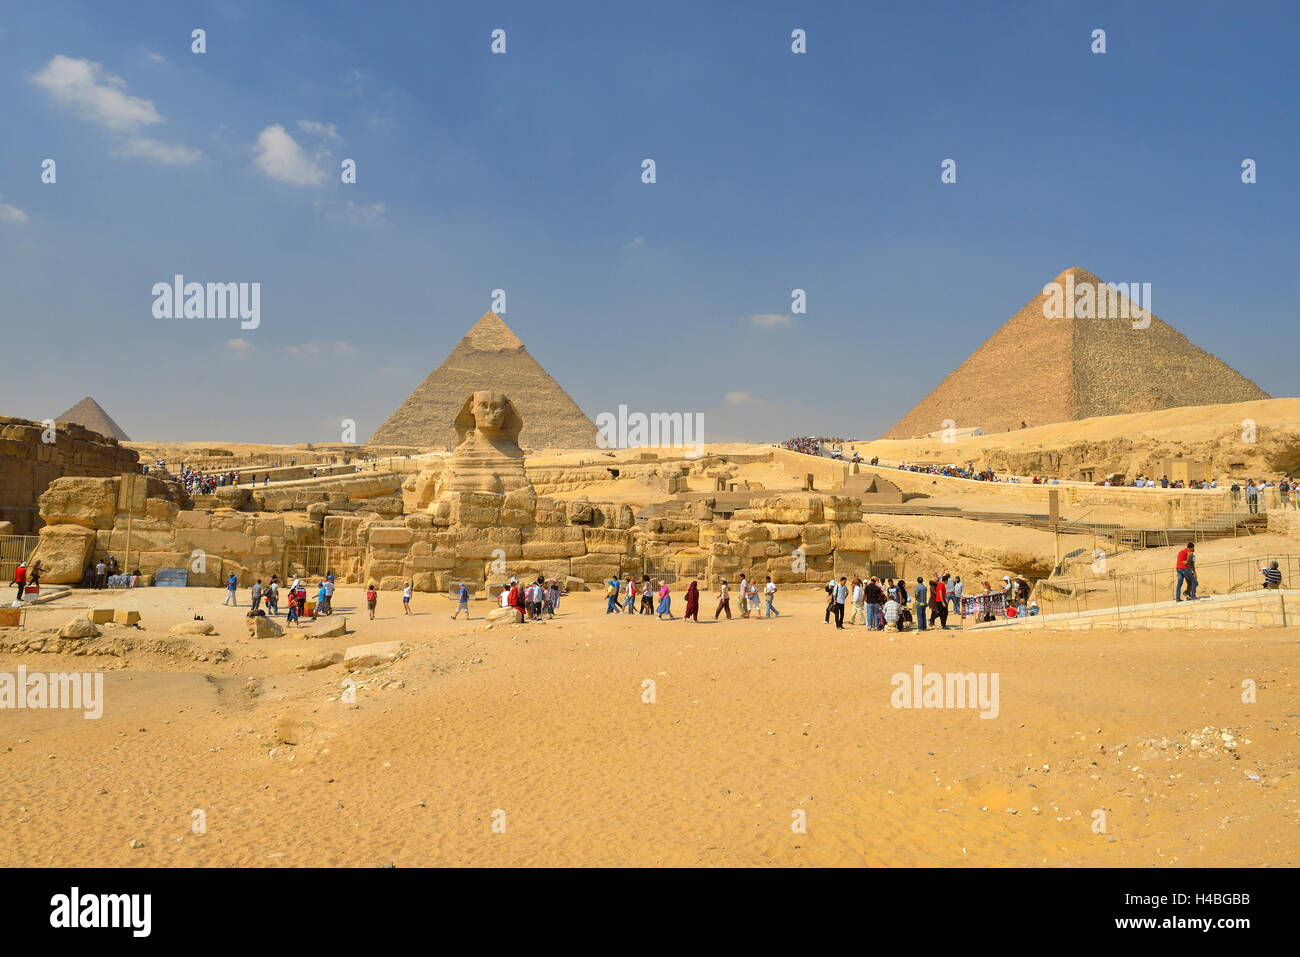 Great Sphinx of Giza, Giza Pyramids, Cairo, Egypt, Middle East, North Africa, Africa - Stock Image